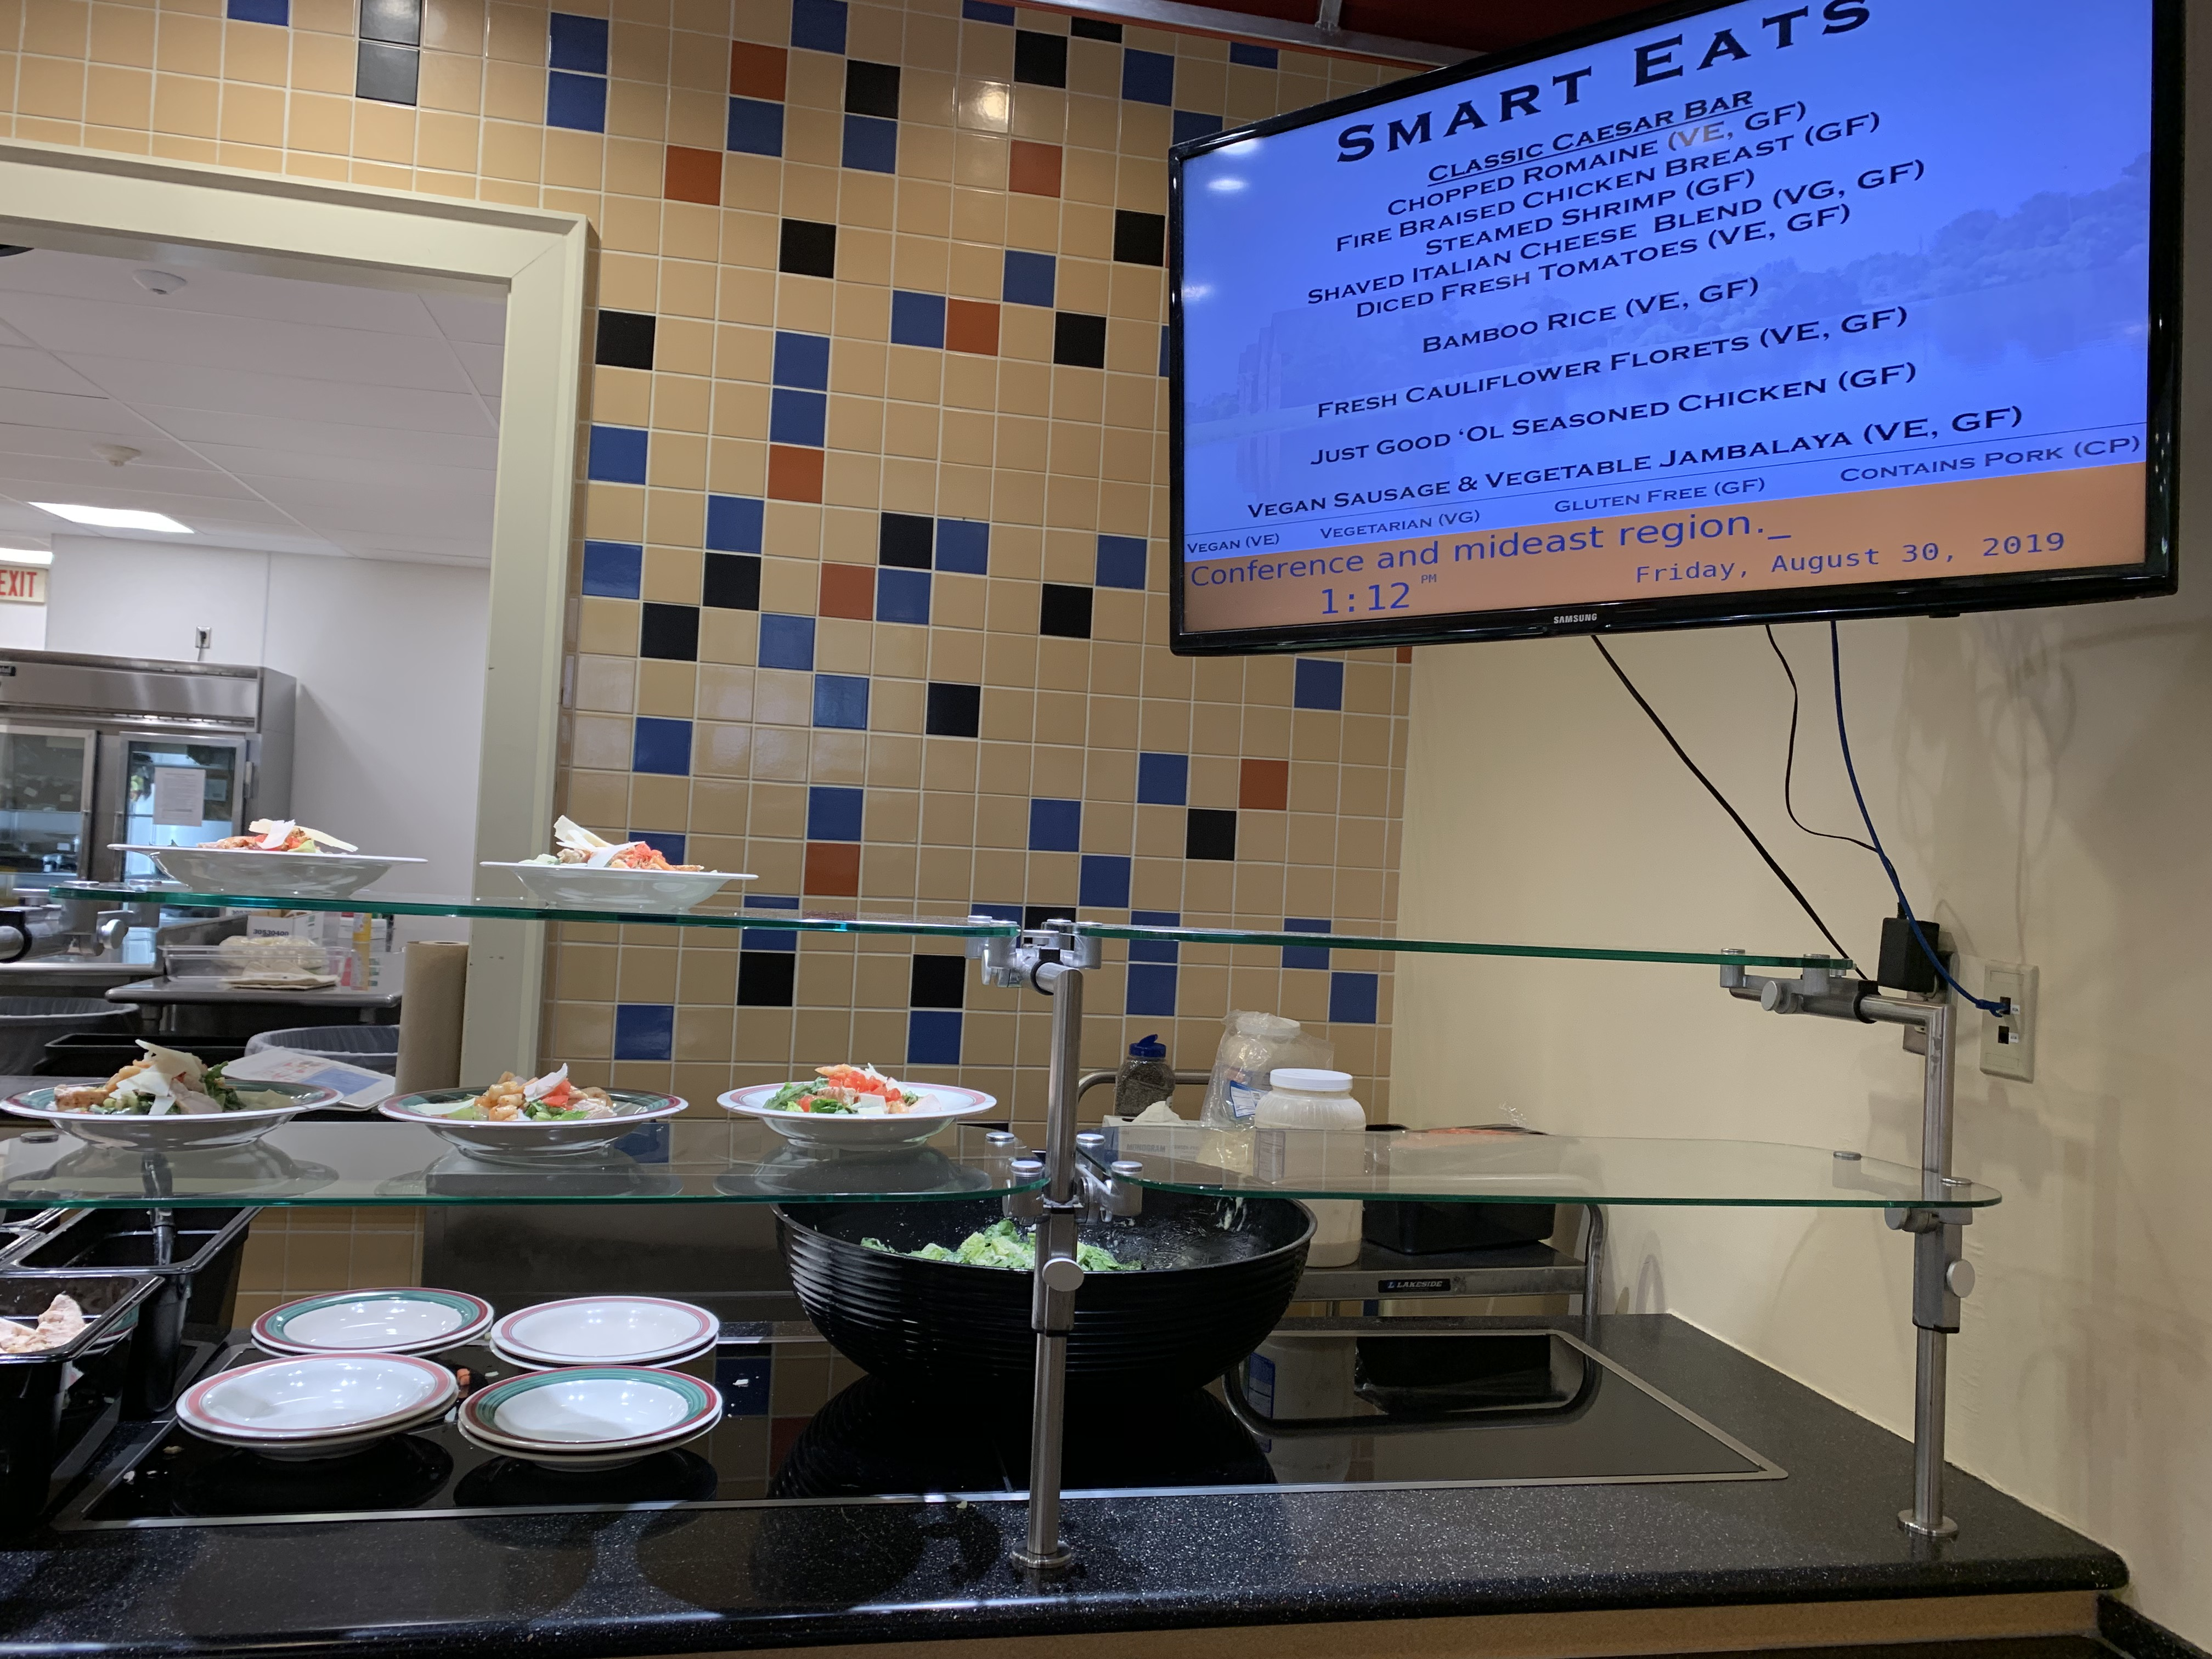 Now another point of service with hot plates of food, Smart Eats provides students with delicious vegan, vegetarian, and gluten free options (Photo Phoebe Doscher/The Gettysburgian).